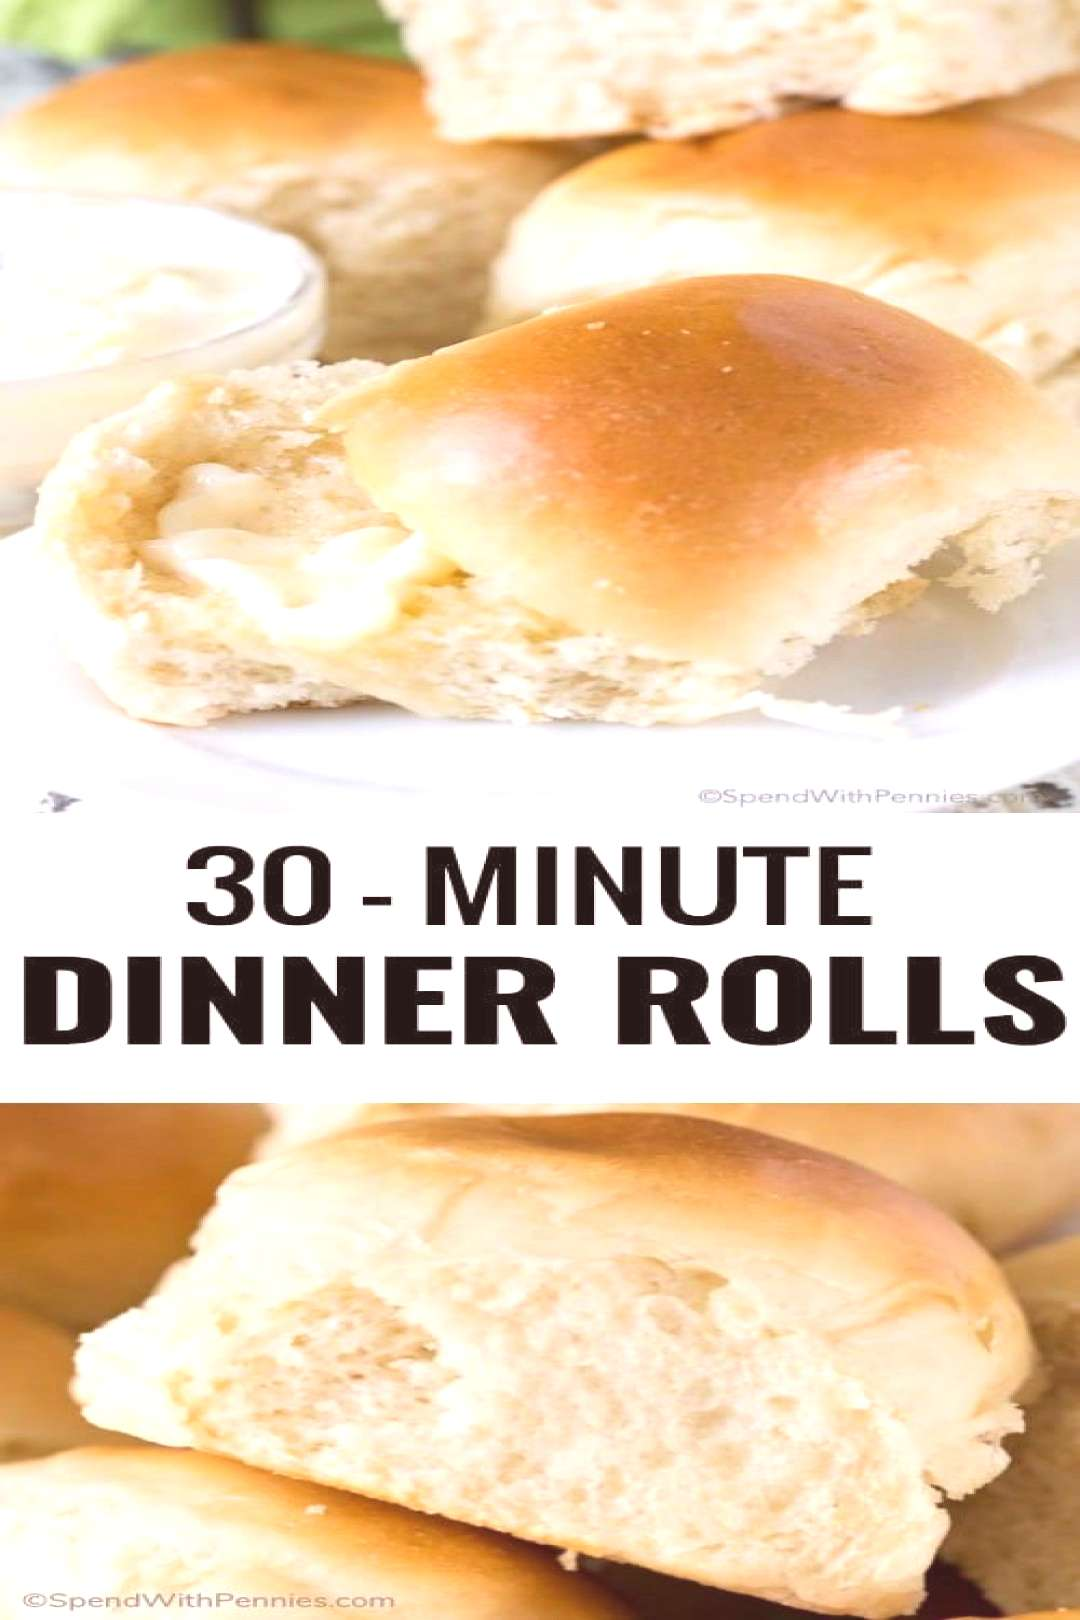 30 Minute Dinner Rolls - Spend With Pennies#dinner